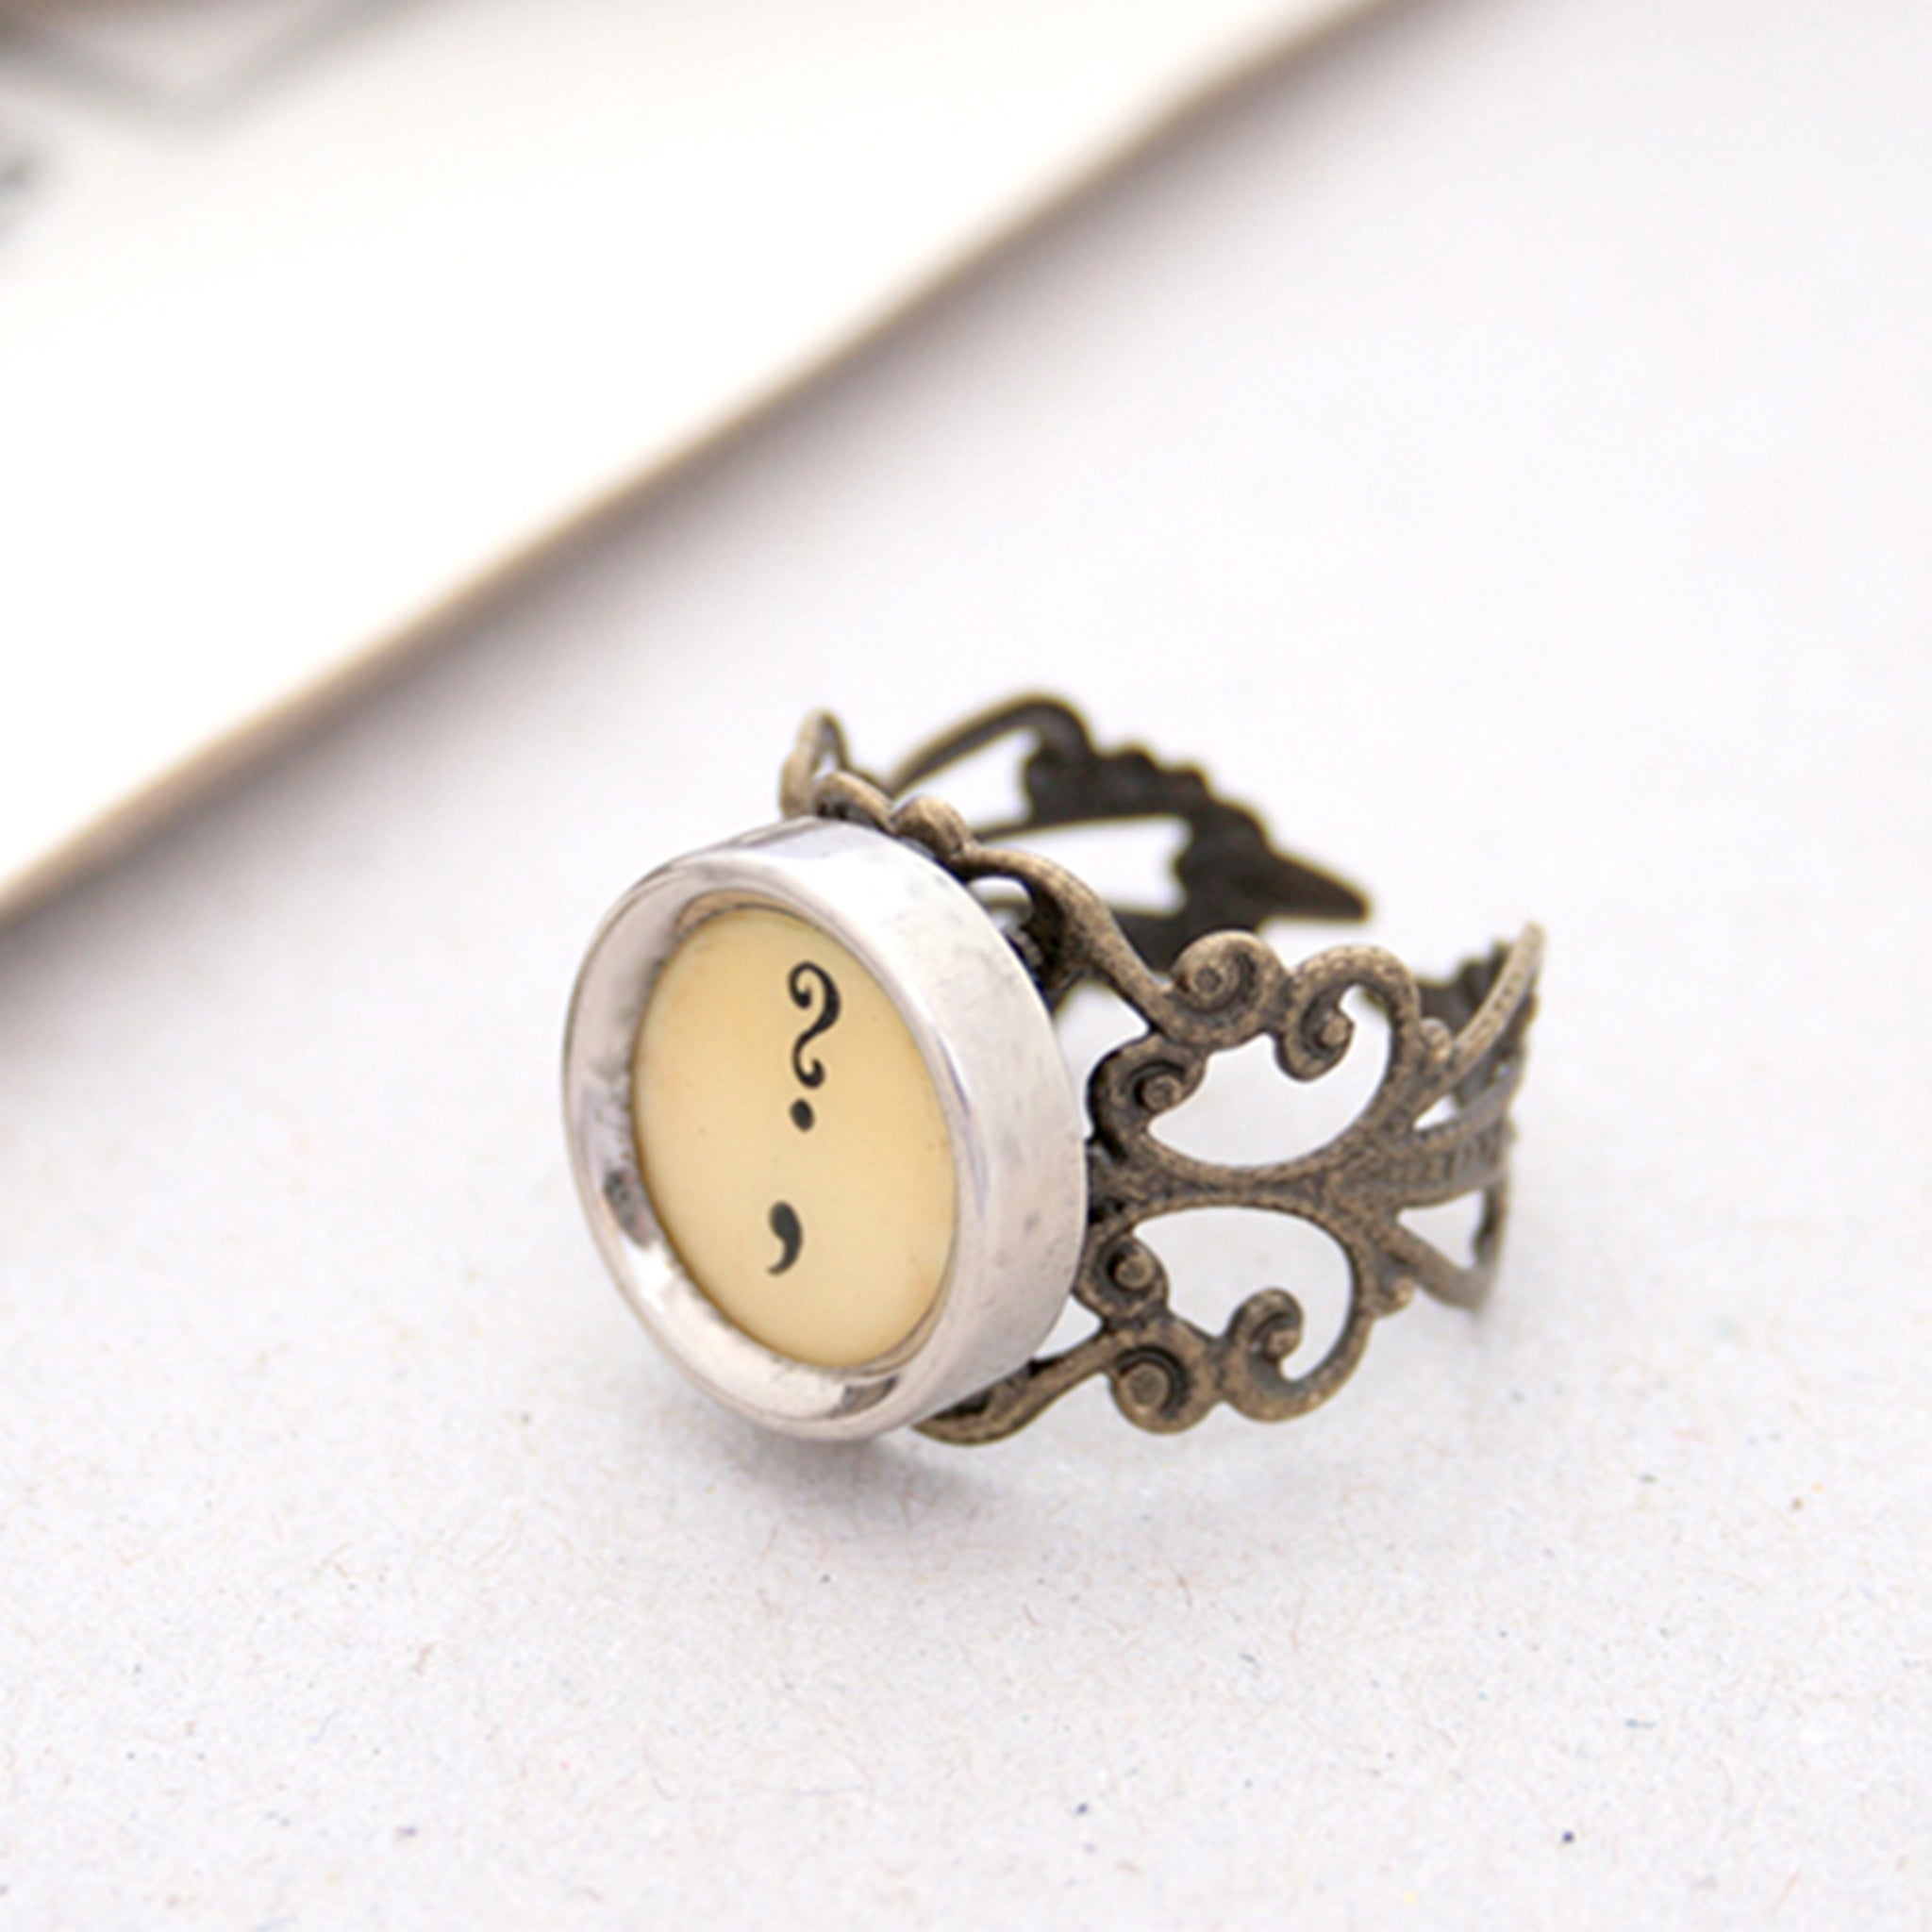 Ring with question mark and comma made of  typewriter key in ivory color